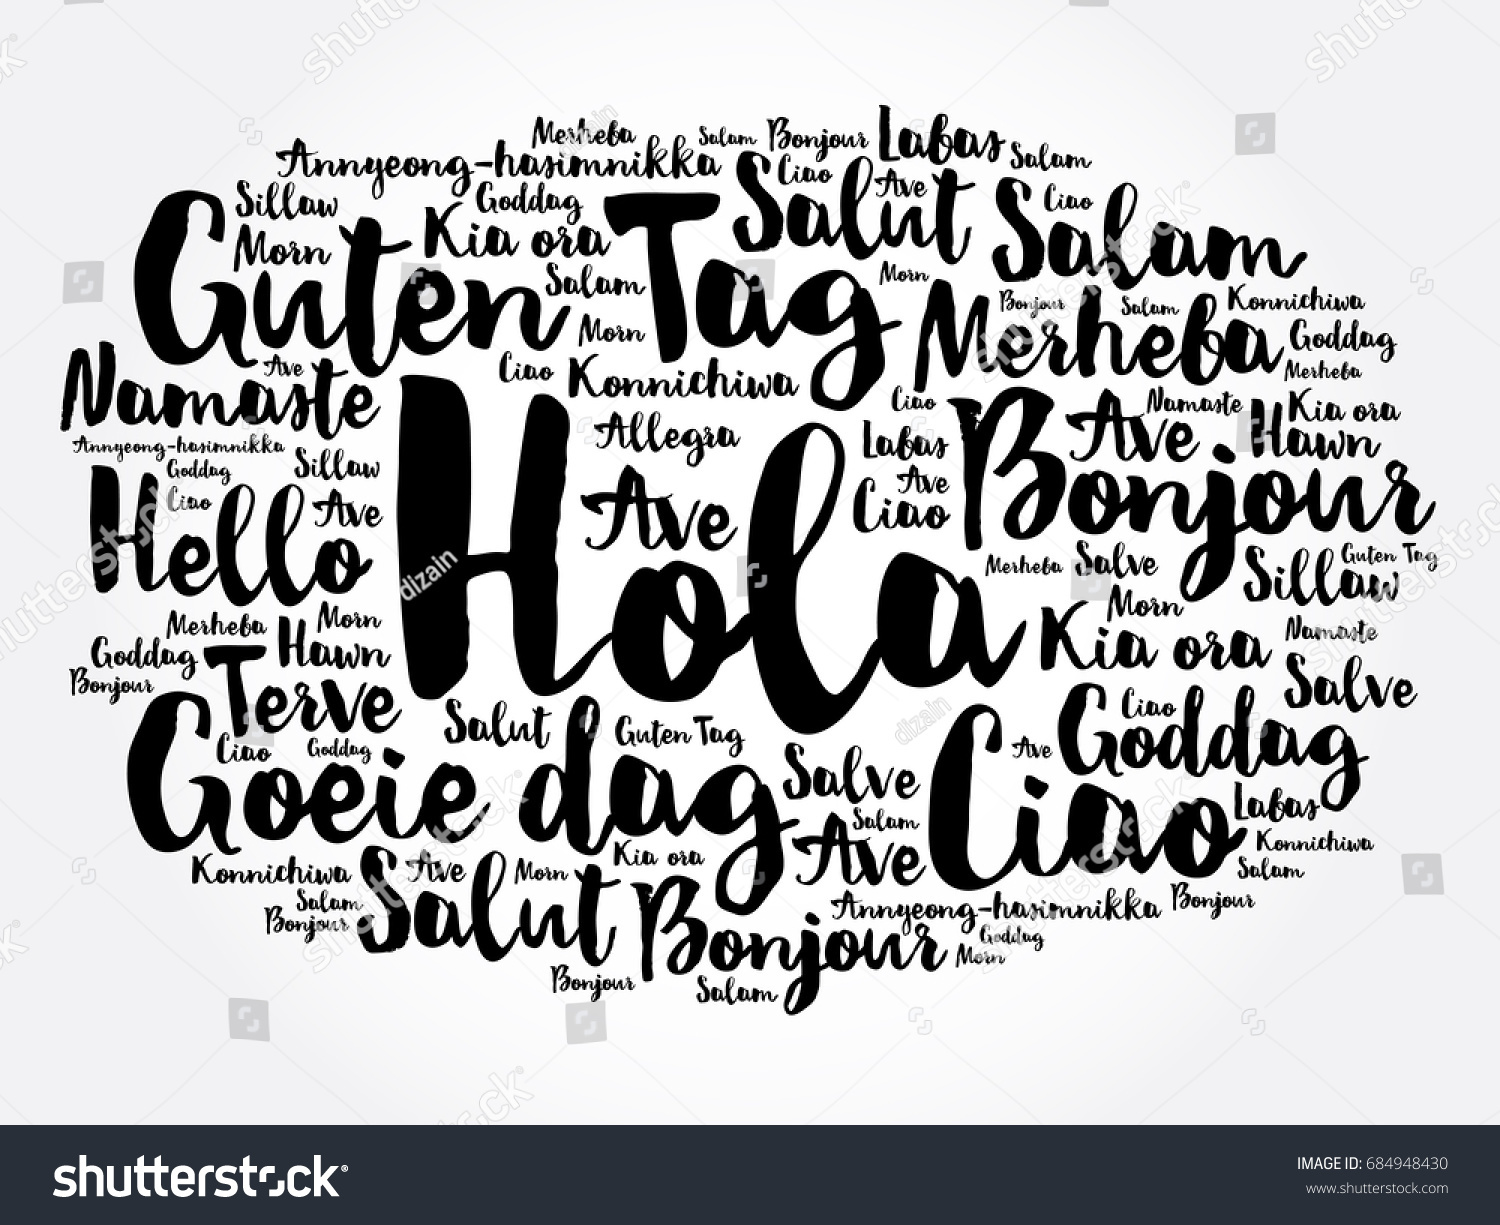 Hola hello greeting spanish word cloud stock vector 684948430 hola hello greeting in spanish word cloud in different languages of the world kristyandbryce Image collections